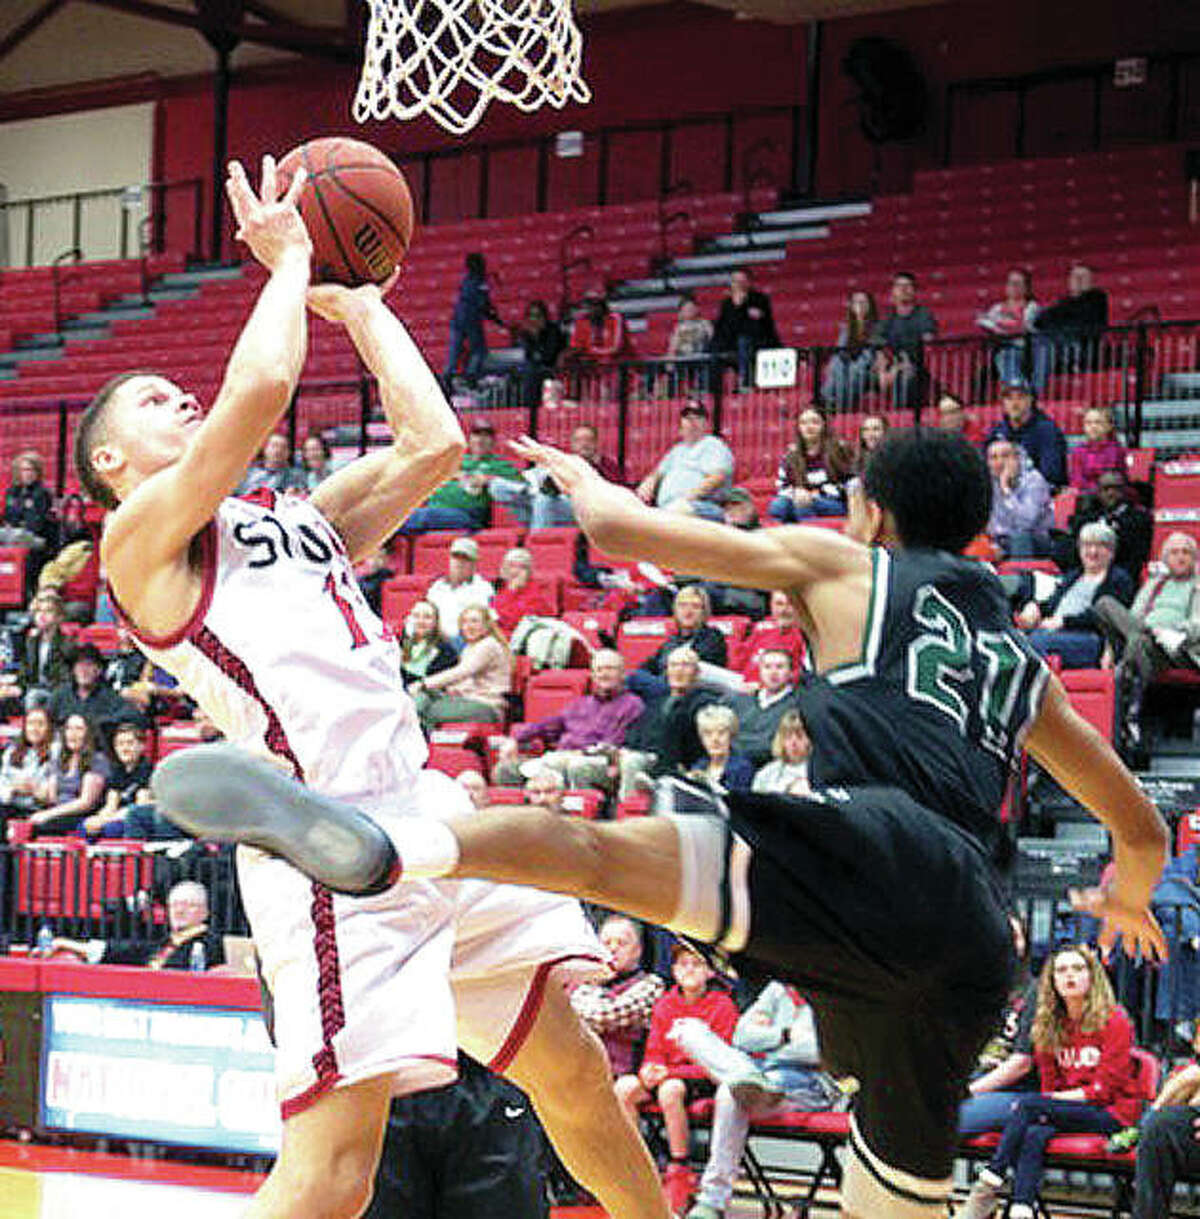 SIUE's Christian Ellis, left, puts up a shot over Chicago State's Cameron Bowles (20) in action Tuesday night at the Vadalabene Center. Ellis scored 19 points and SIUE won 88-76